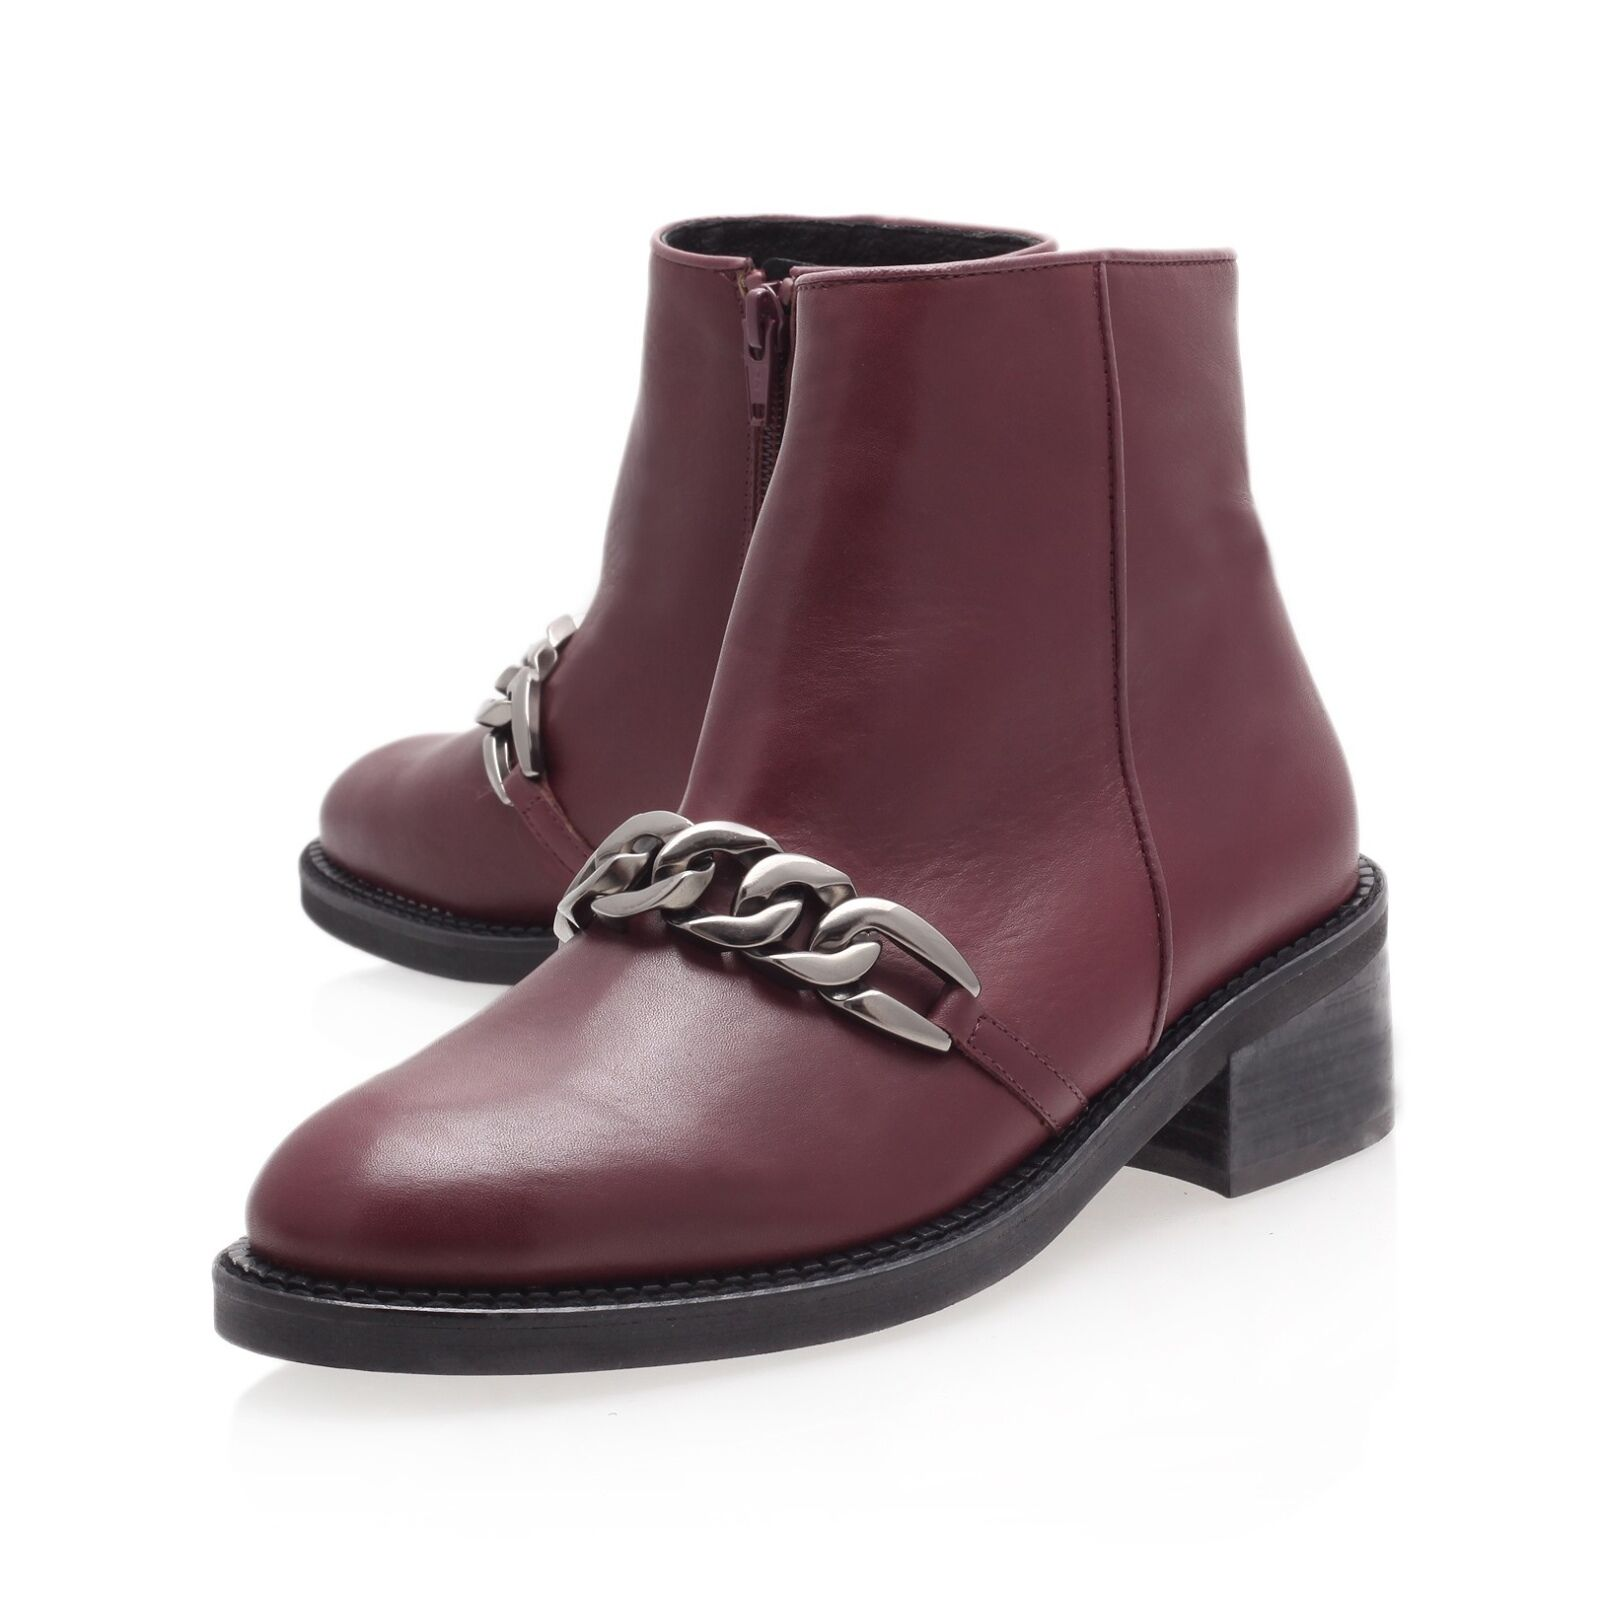 KG ANKLE BOOTS ..   / CHUNKY CHAIN / WINE LEATHER / ANKLE .. UK 5   EU 38